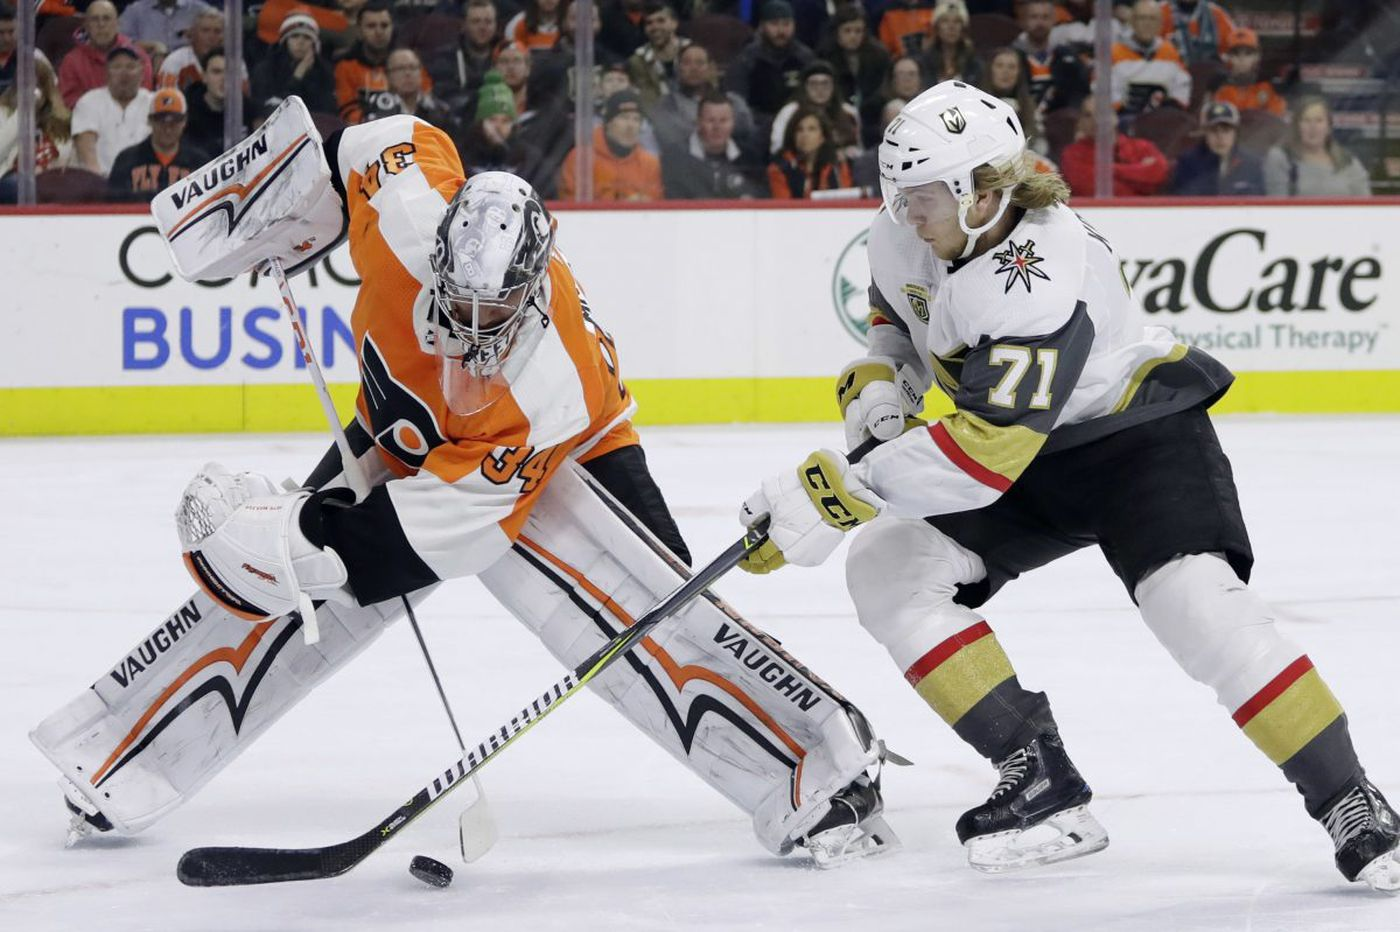 Flyers fall to Vegas on late goal